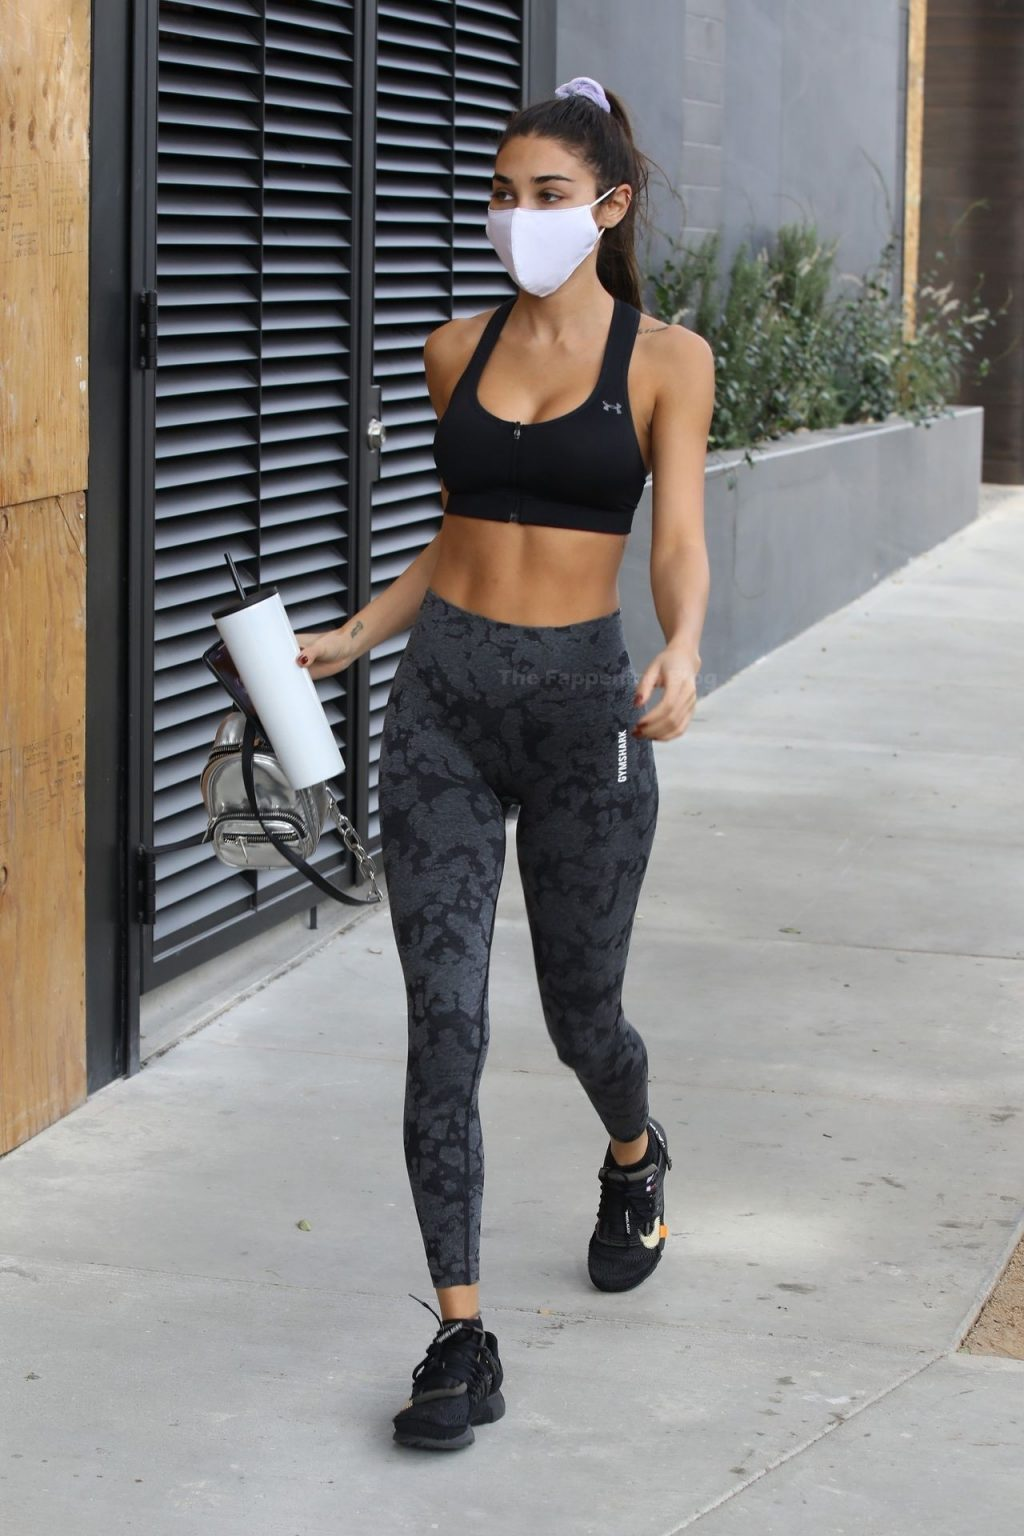 Chantel Jeffries Gets an Early Start on Her Workout (24 Photos)